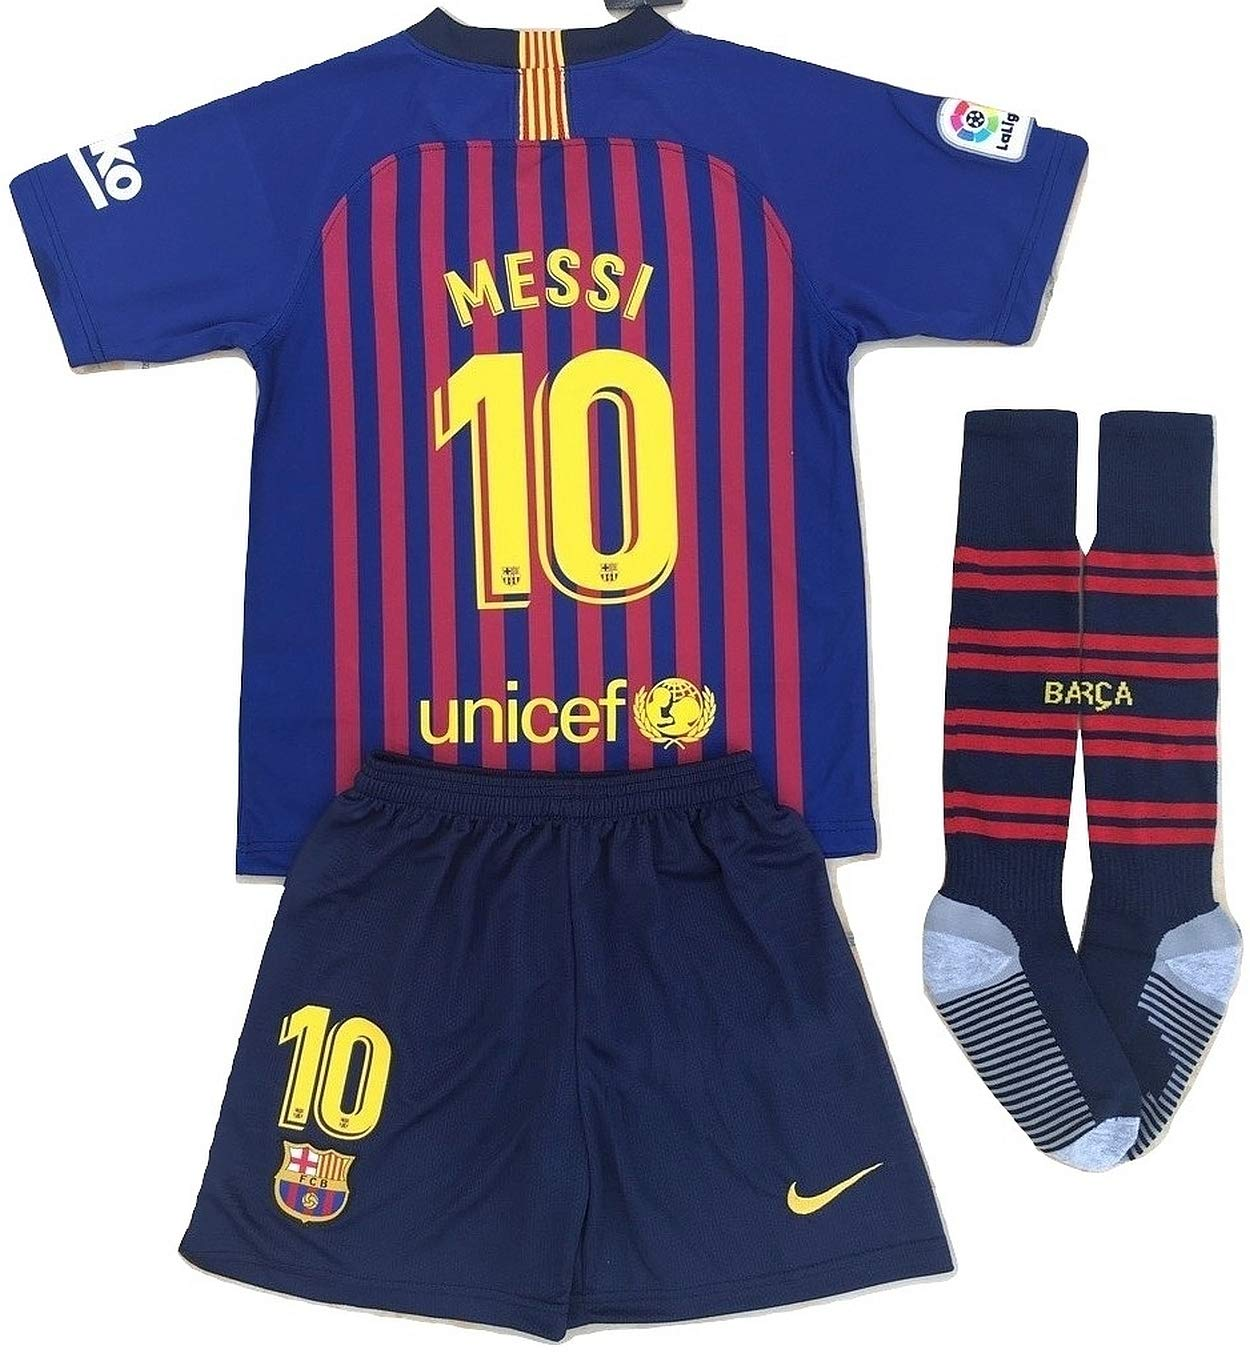 MSK-Store Messi #10 FC Barcelona 2018-2019 Youths Home Soccer Jersey, Shorts & Socks Set (11-13 Years Old)